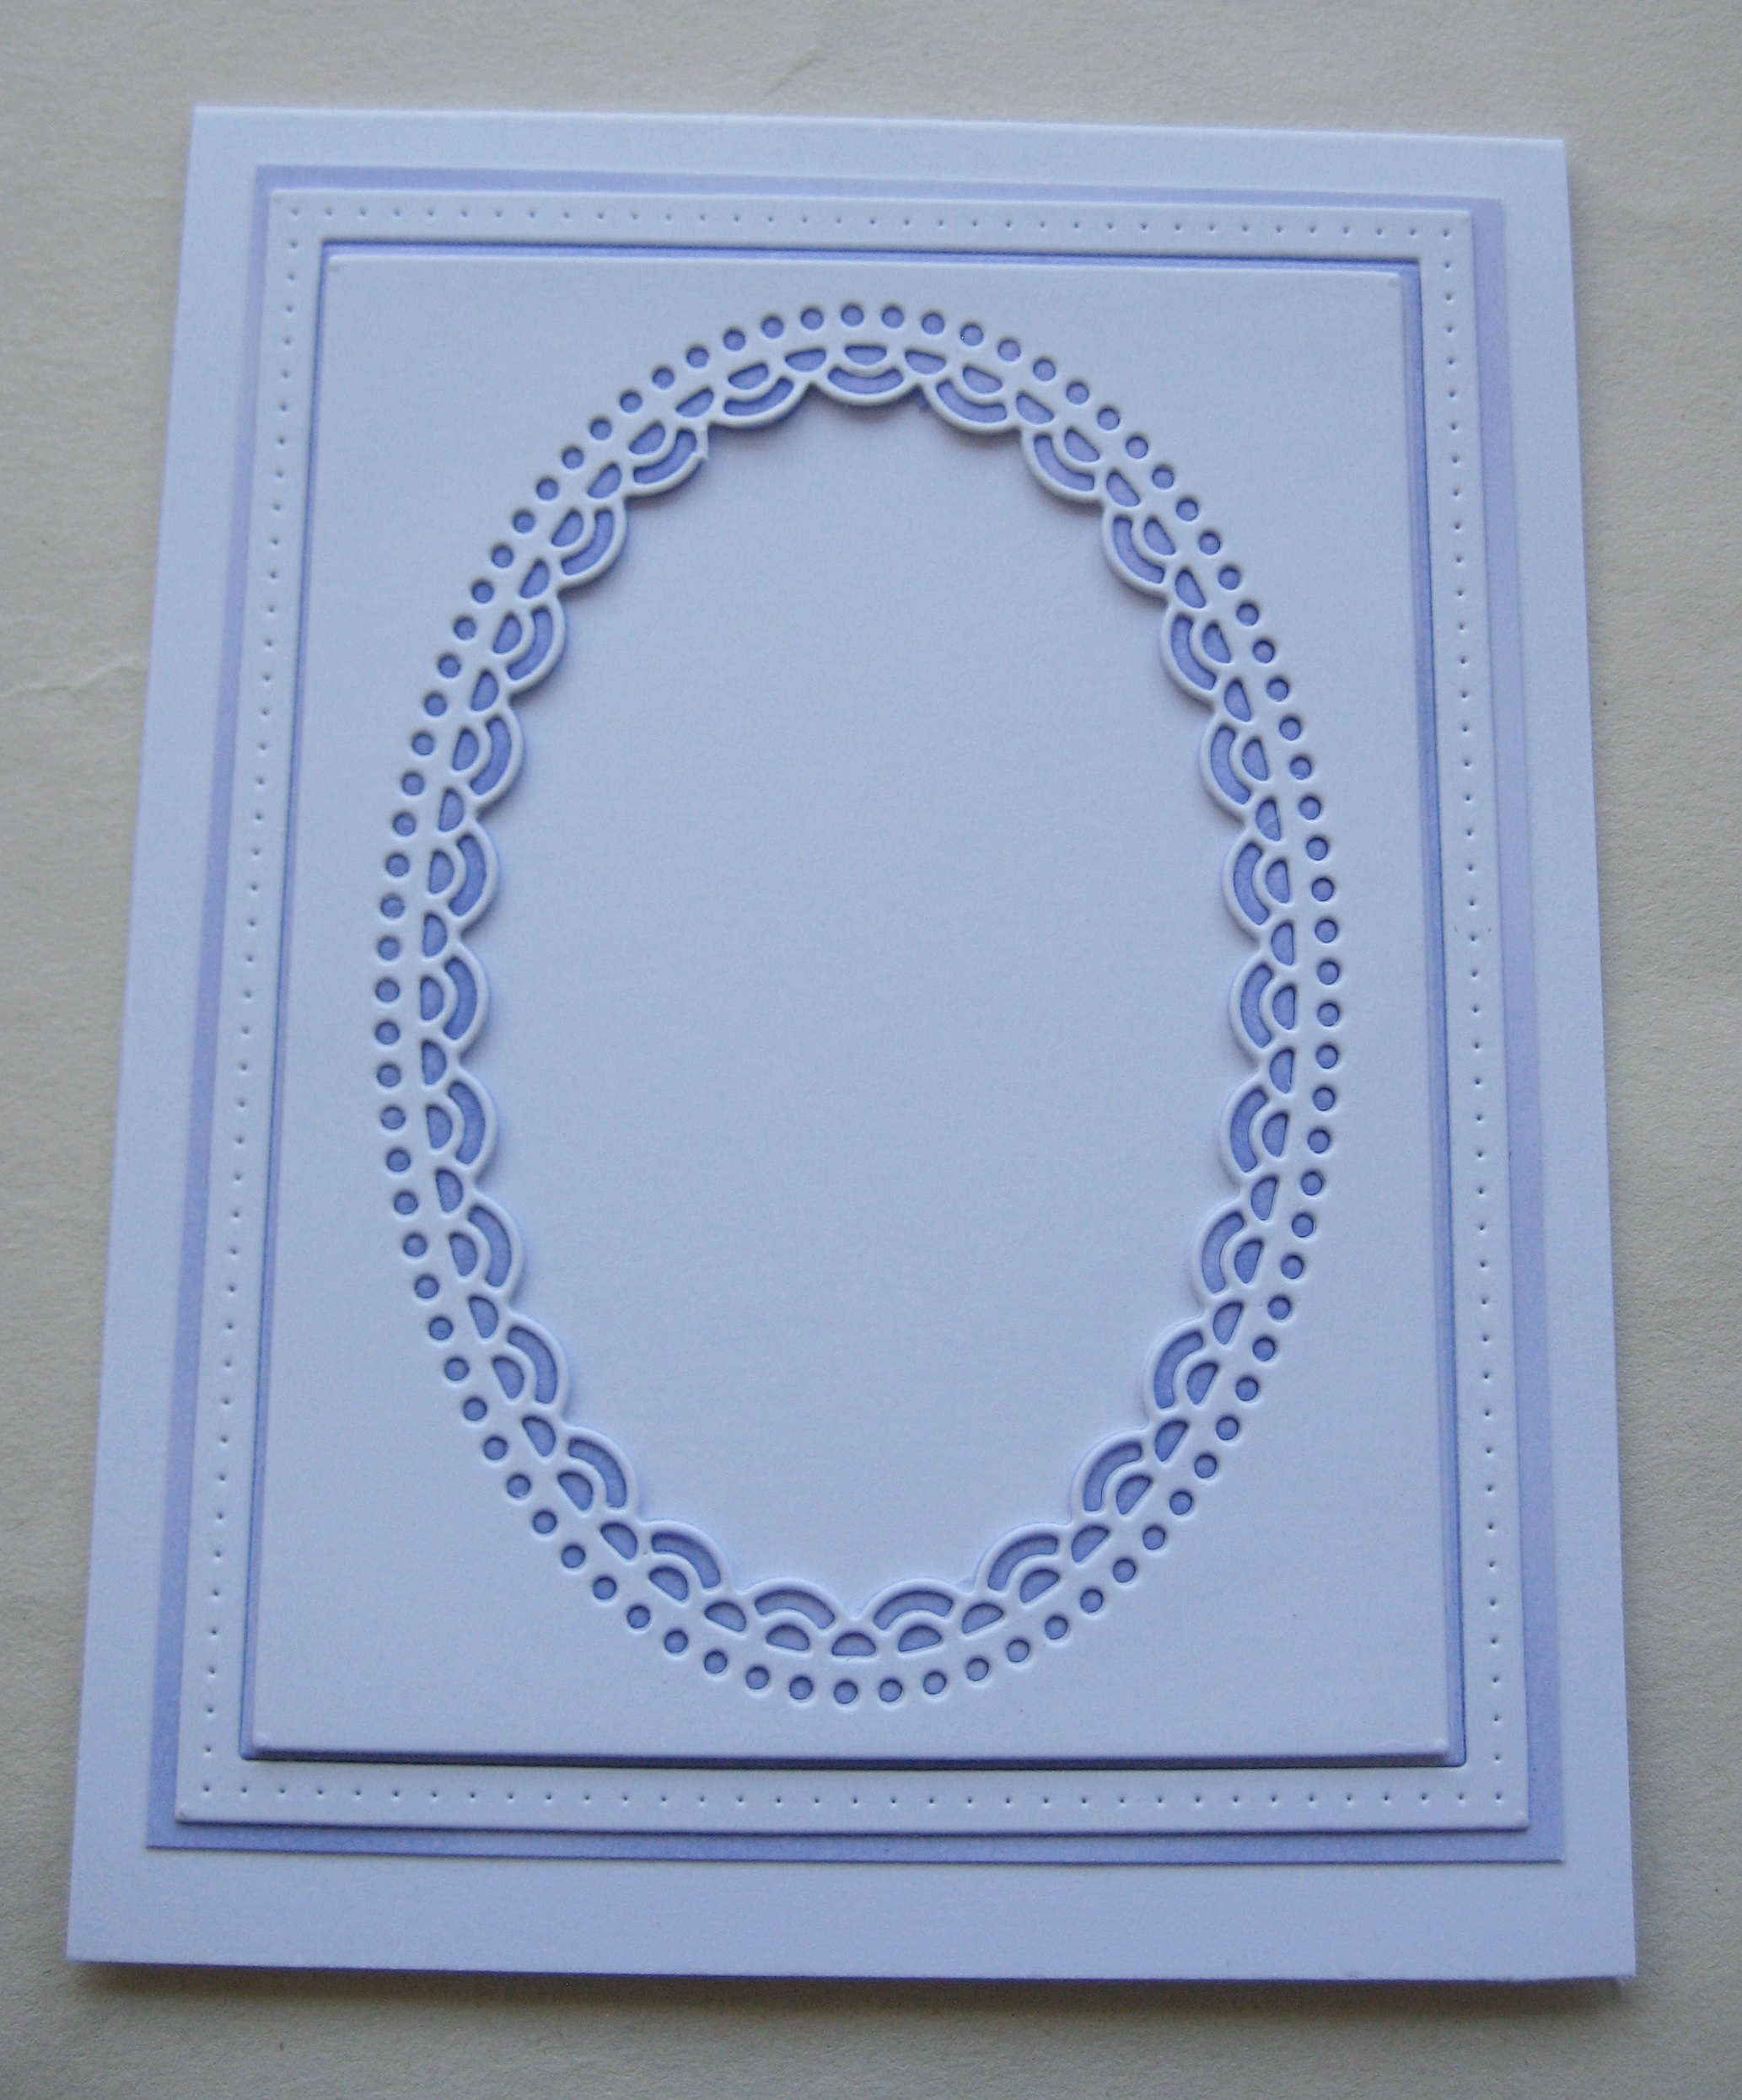 Oval Frame /& Border Metal Die Cut Double Scallop Poppystamps Cutting Dies 2224